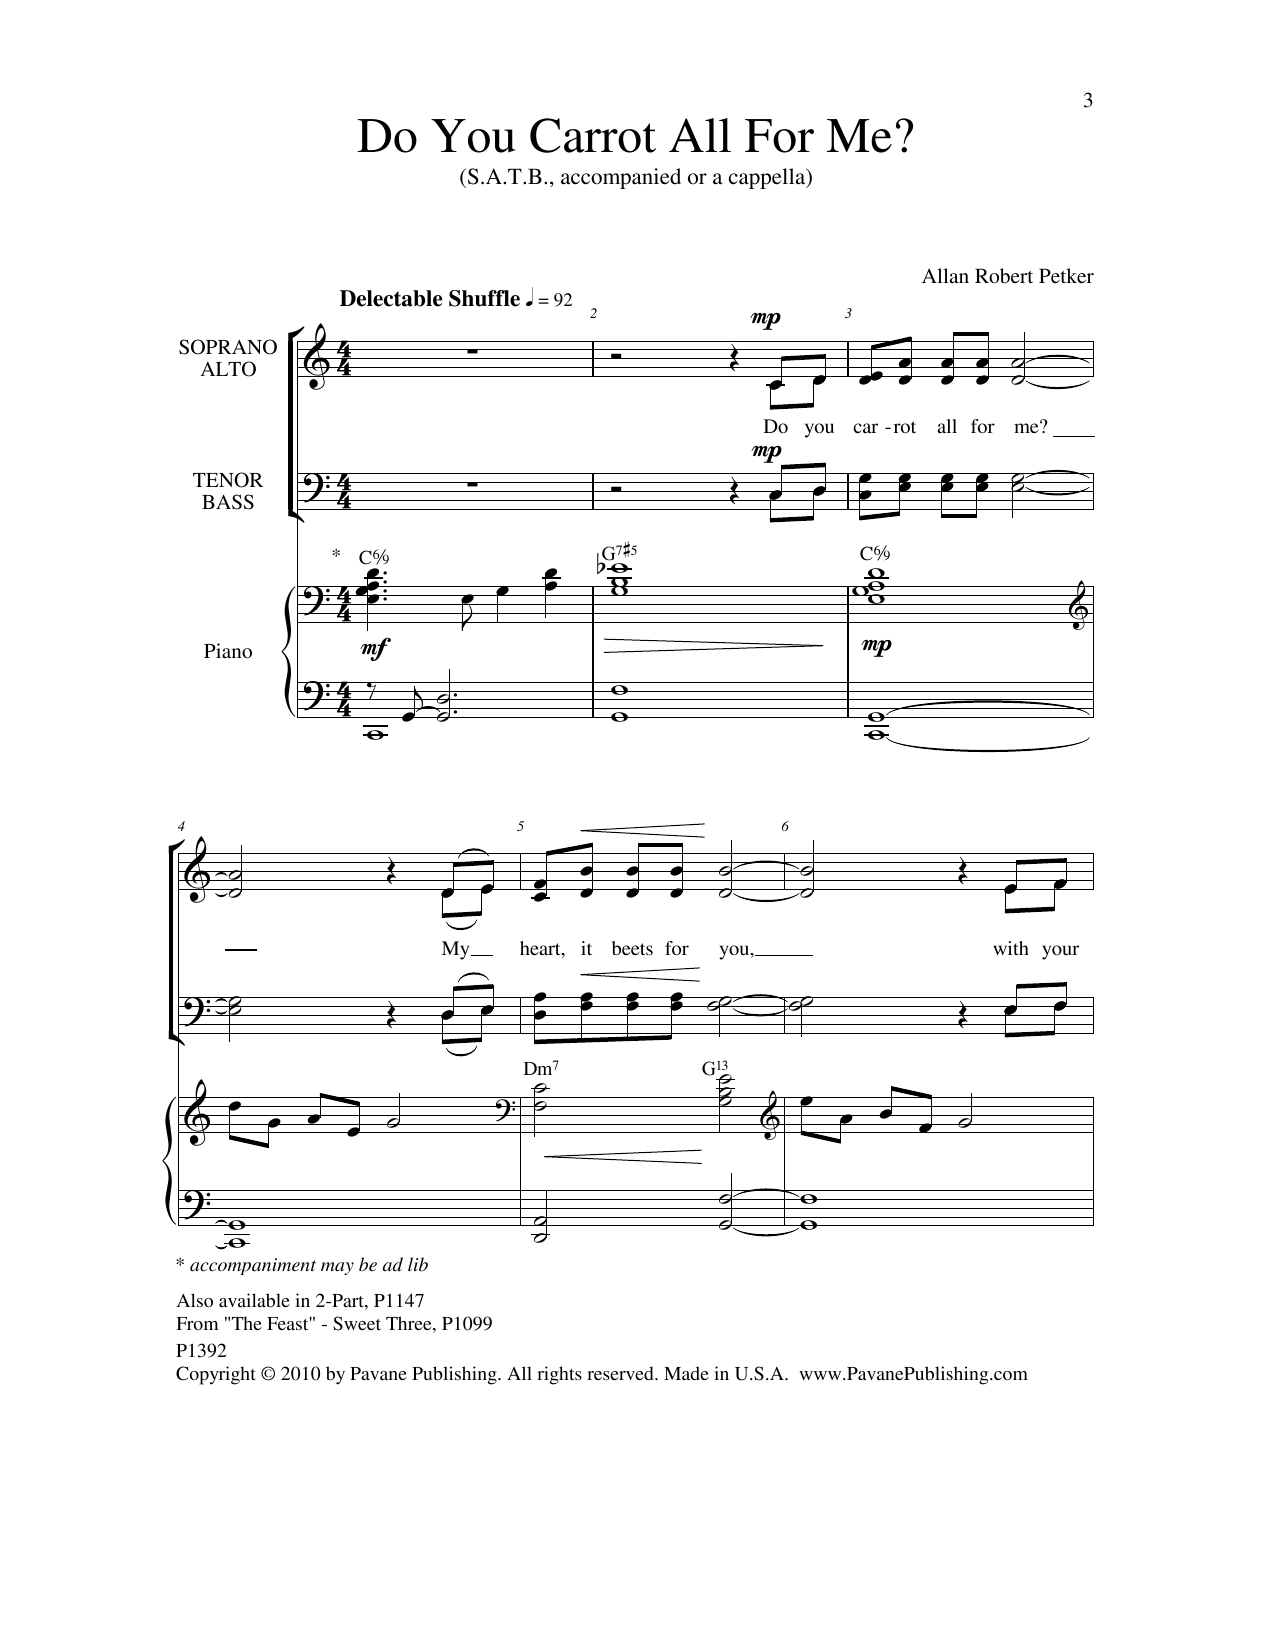 Allan Robert Petker Do You Carrot All For Me sheet music notes and chords. Download Printable PDF.